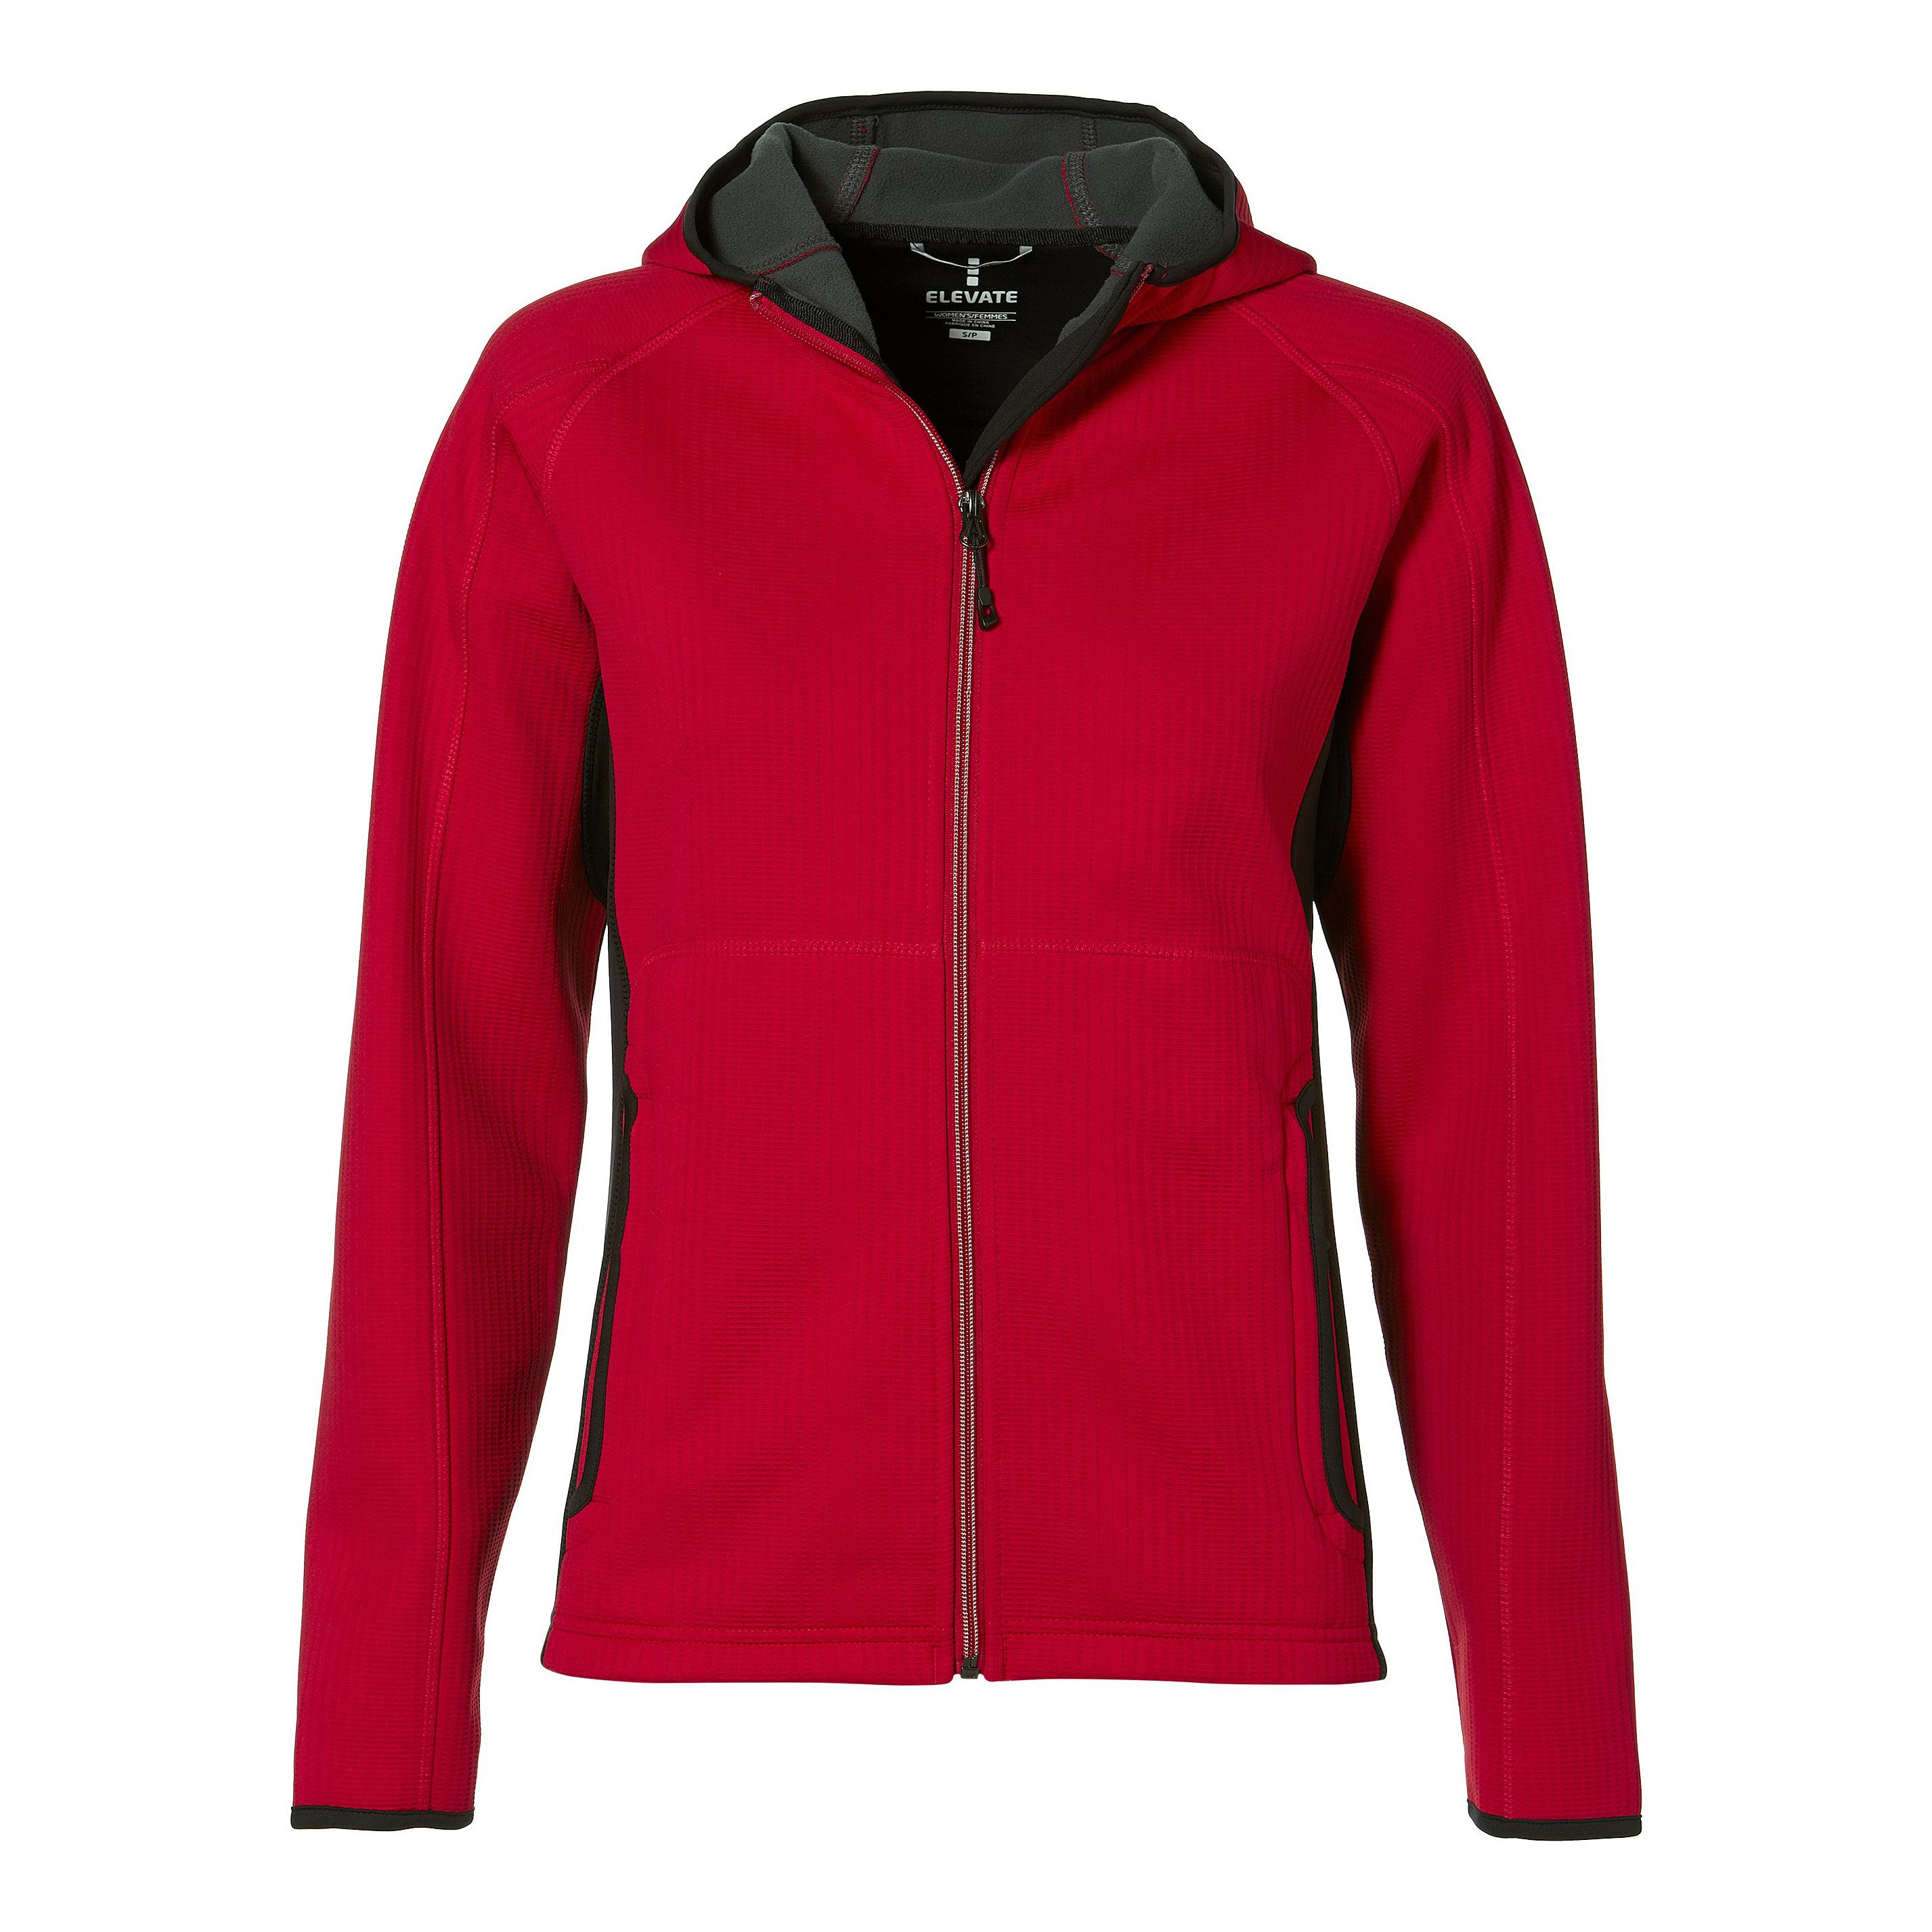 Ladies Ferno Bonded Knit Jacket - Red Only